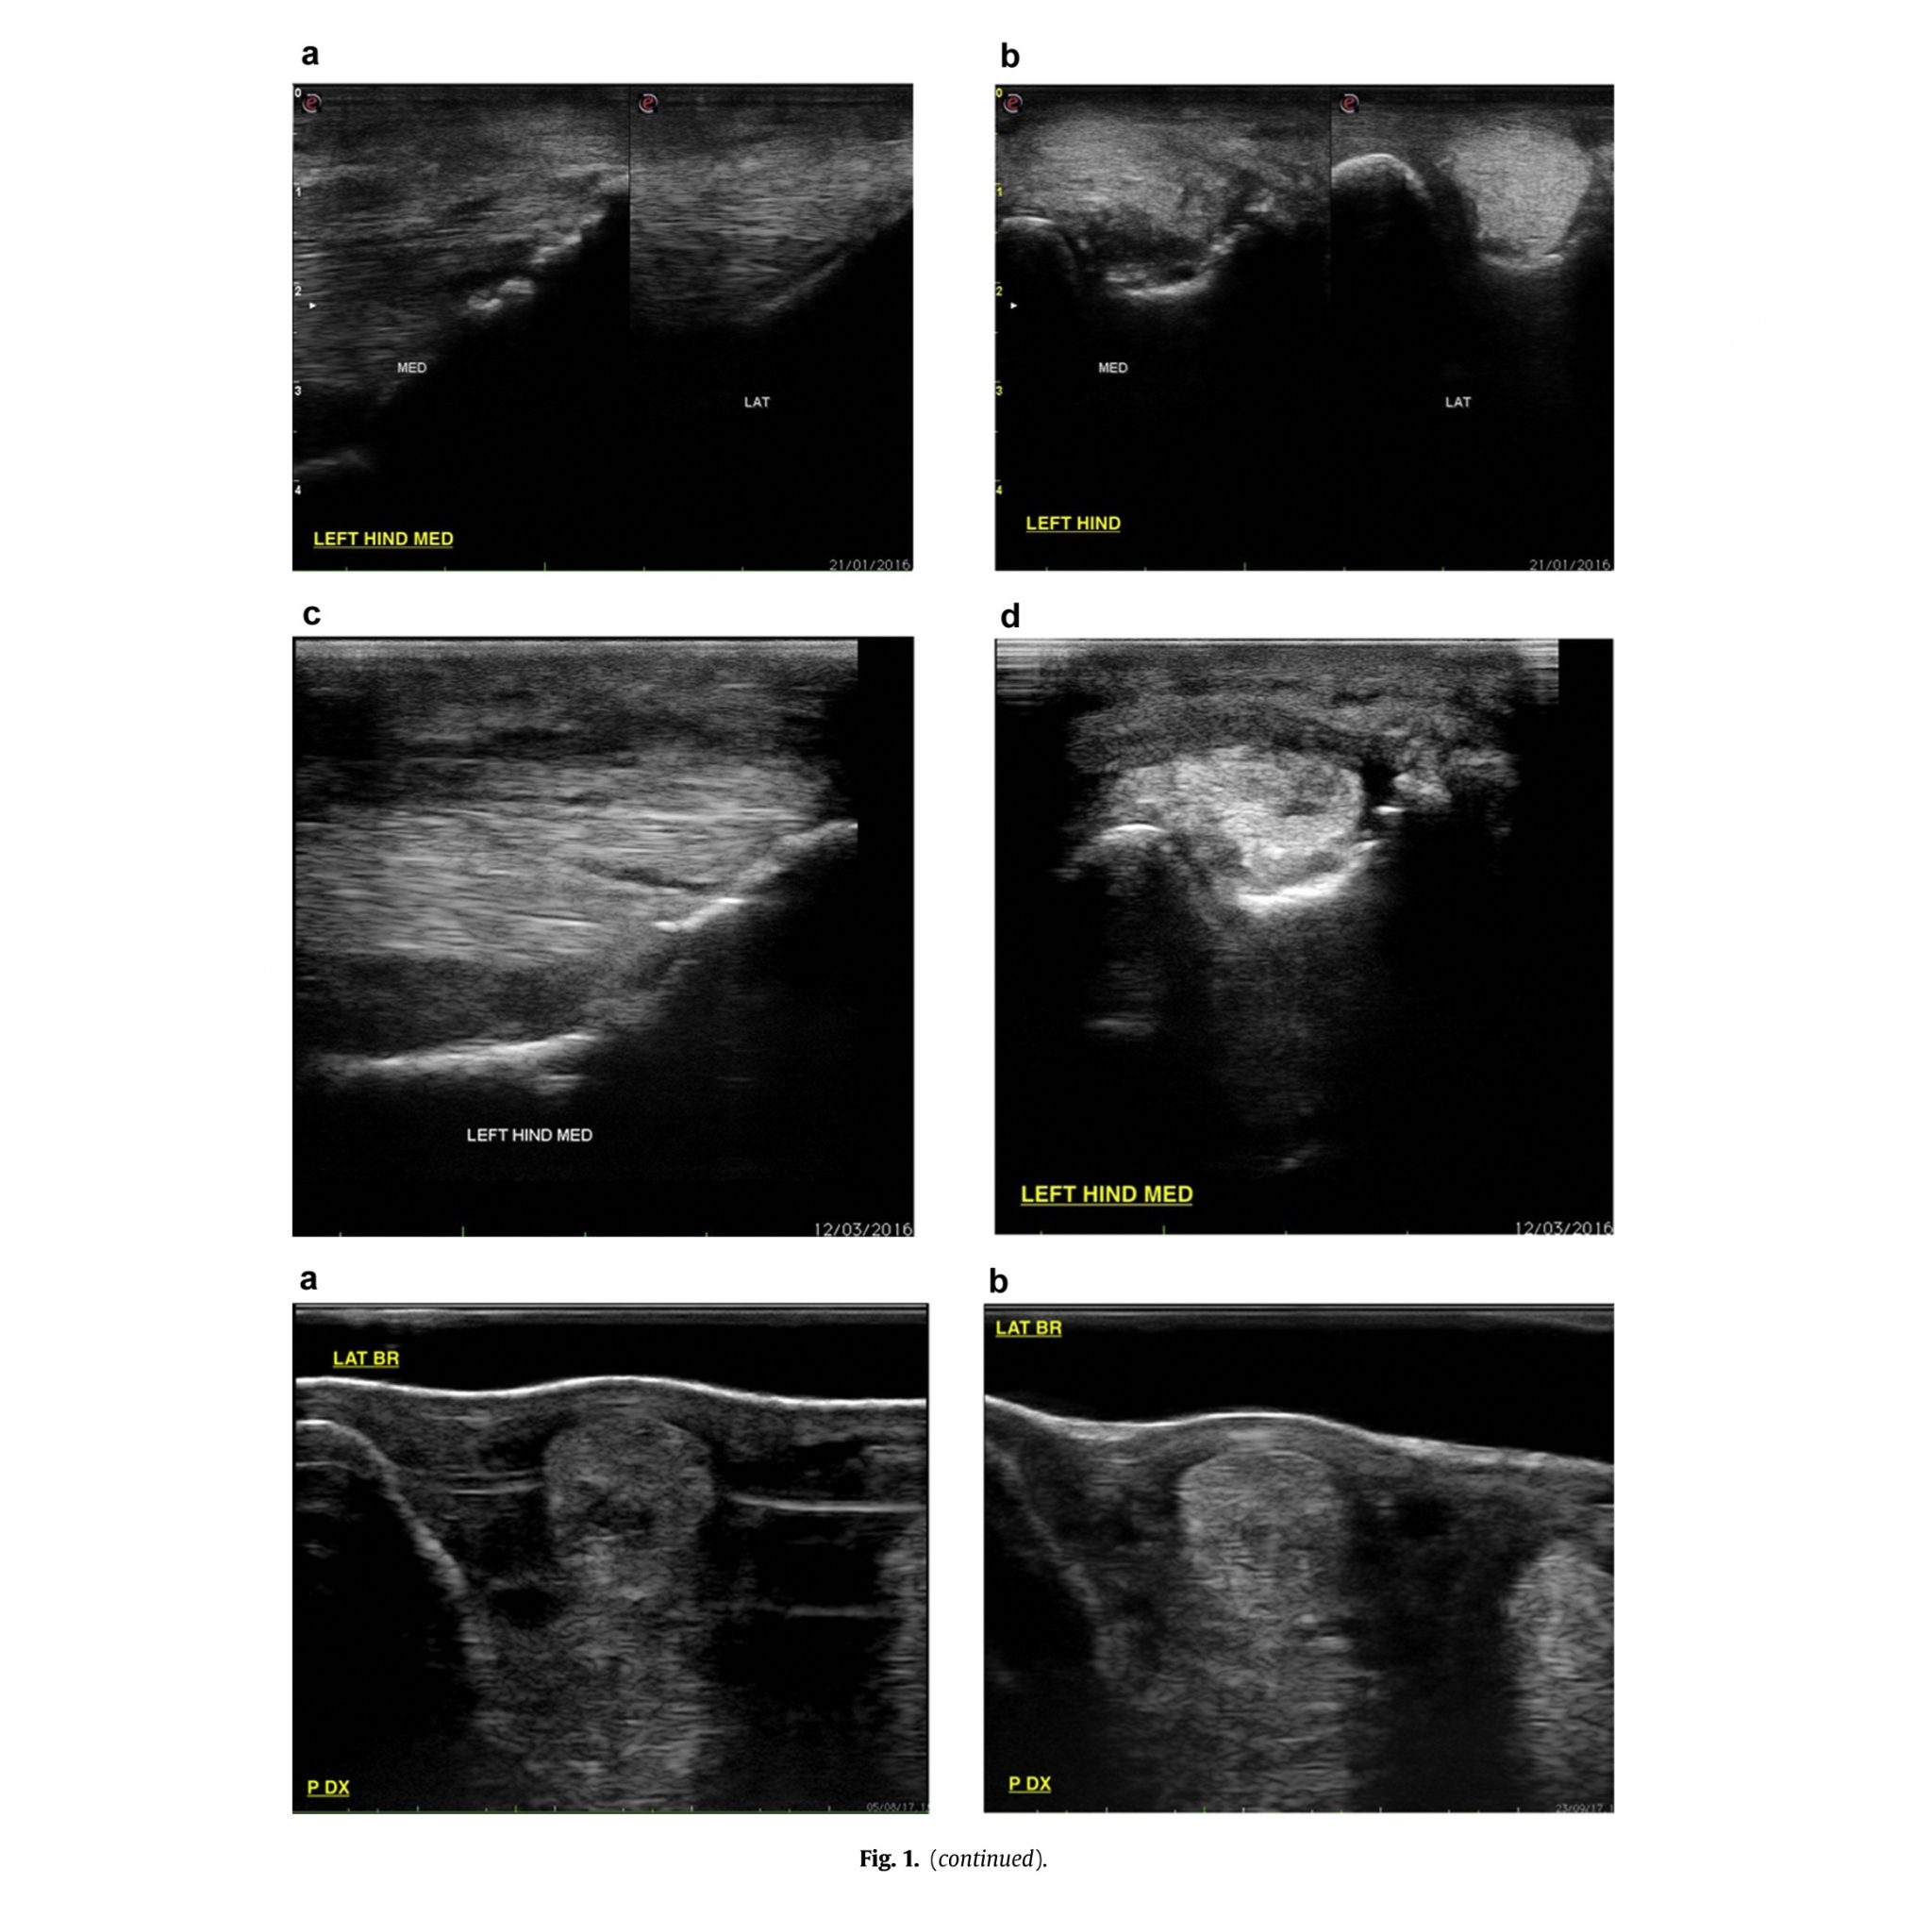 Assessment of Noninvasive Low-Frequency Ultrasound Therapy - Ultrasound Images 2